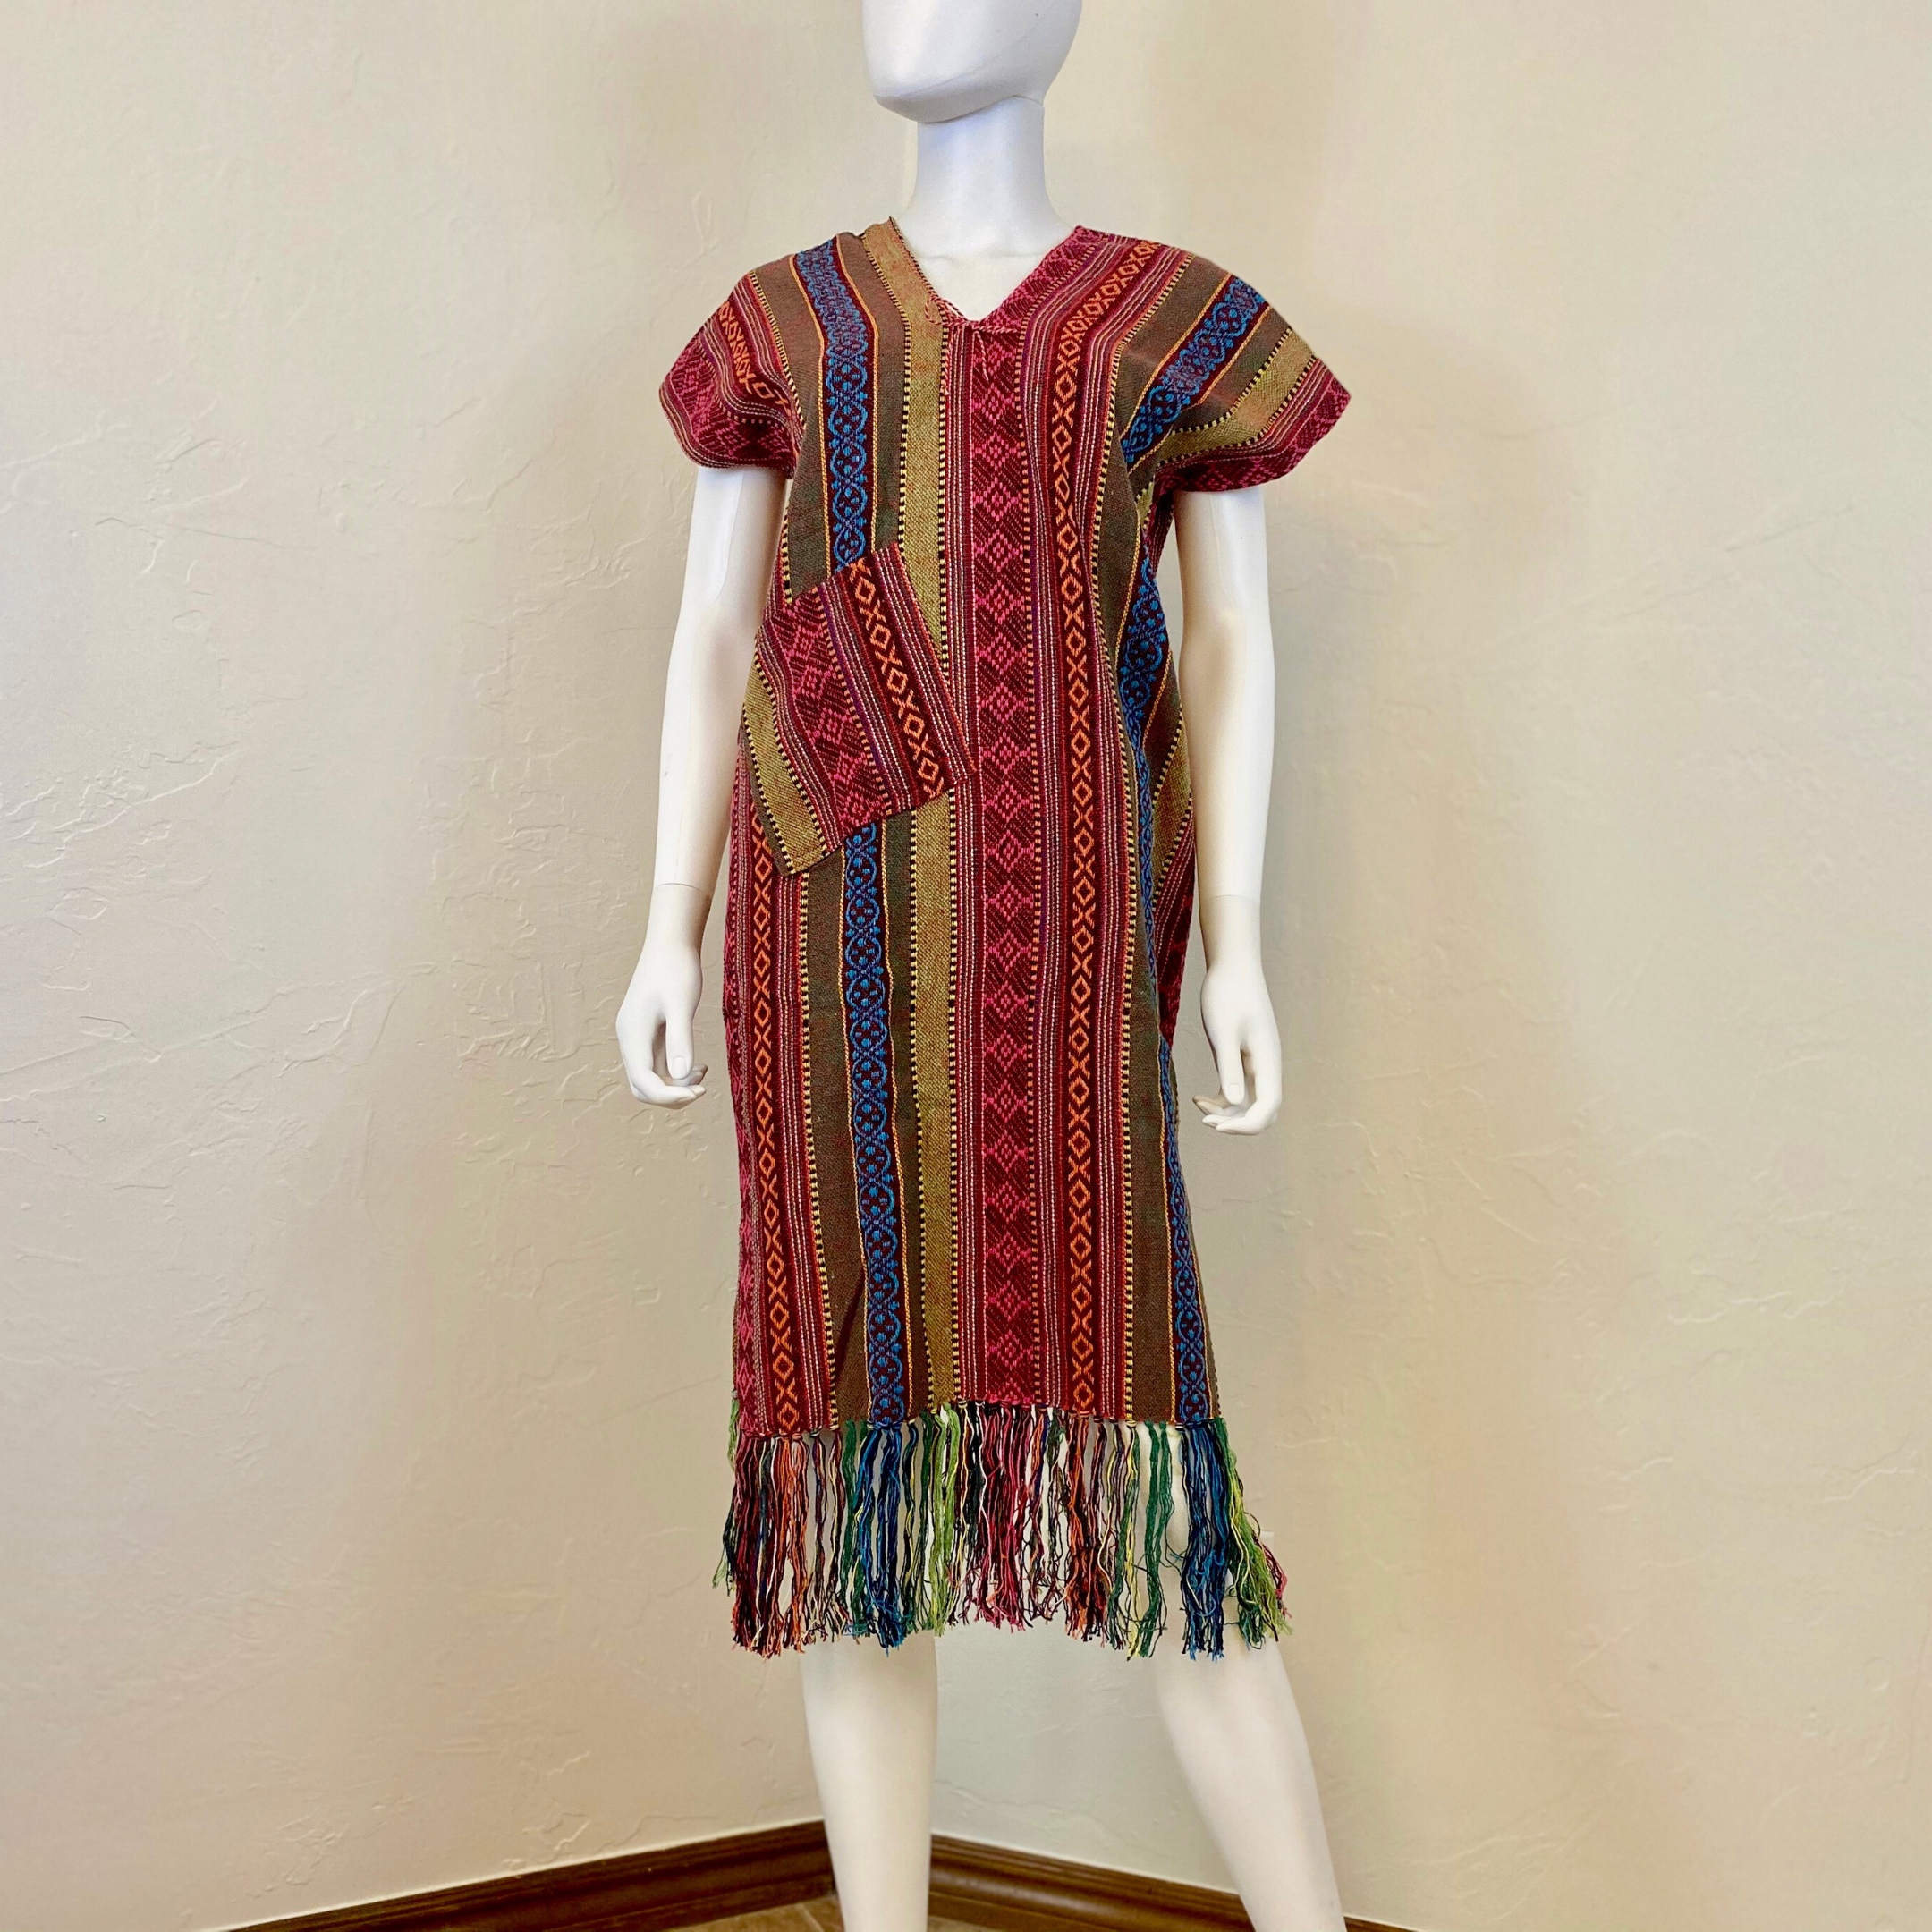 Handmade Thai Hill Tribe Handwoven Dress T01004